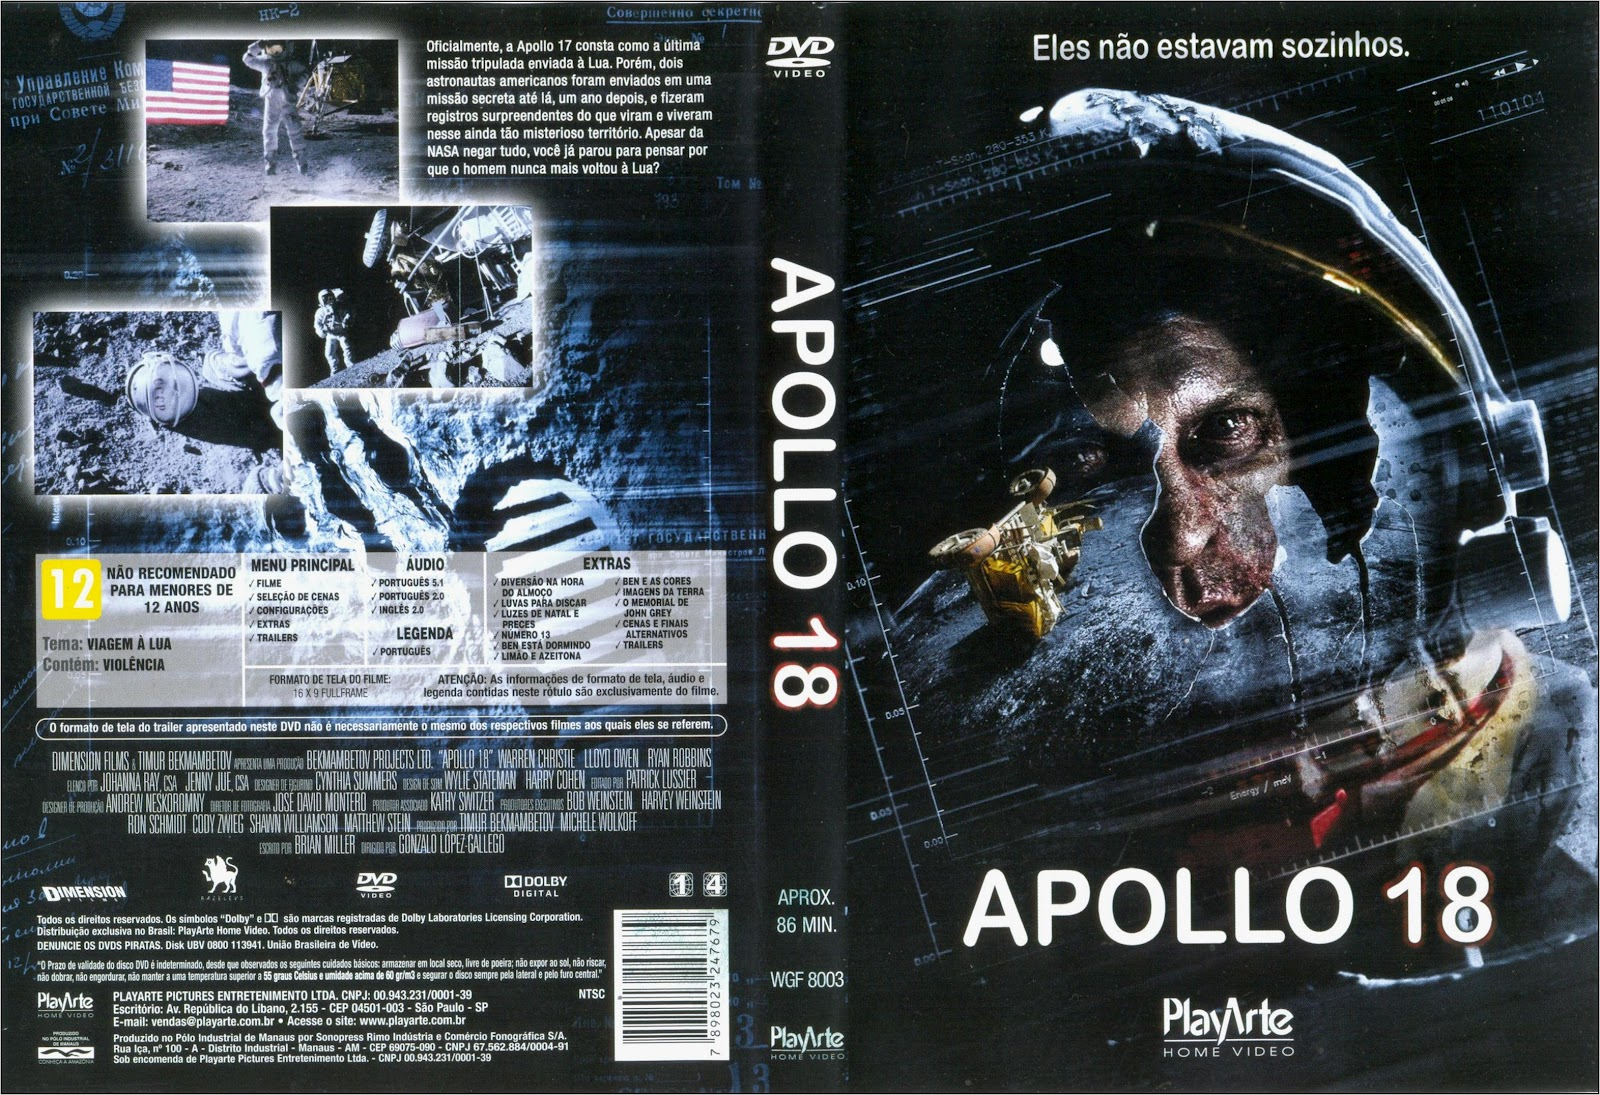 apollo 18 truth or fiction - photo #25